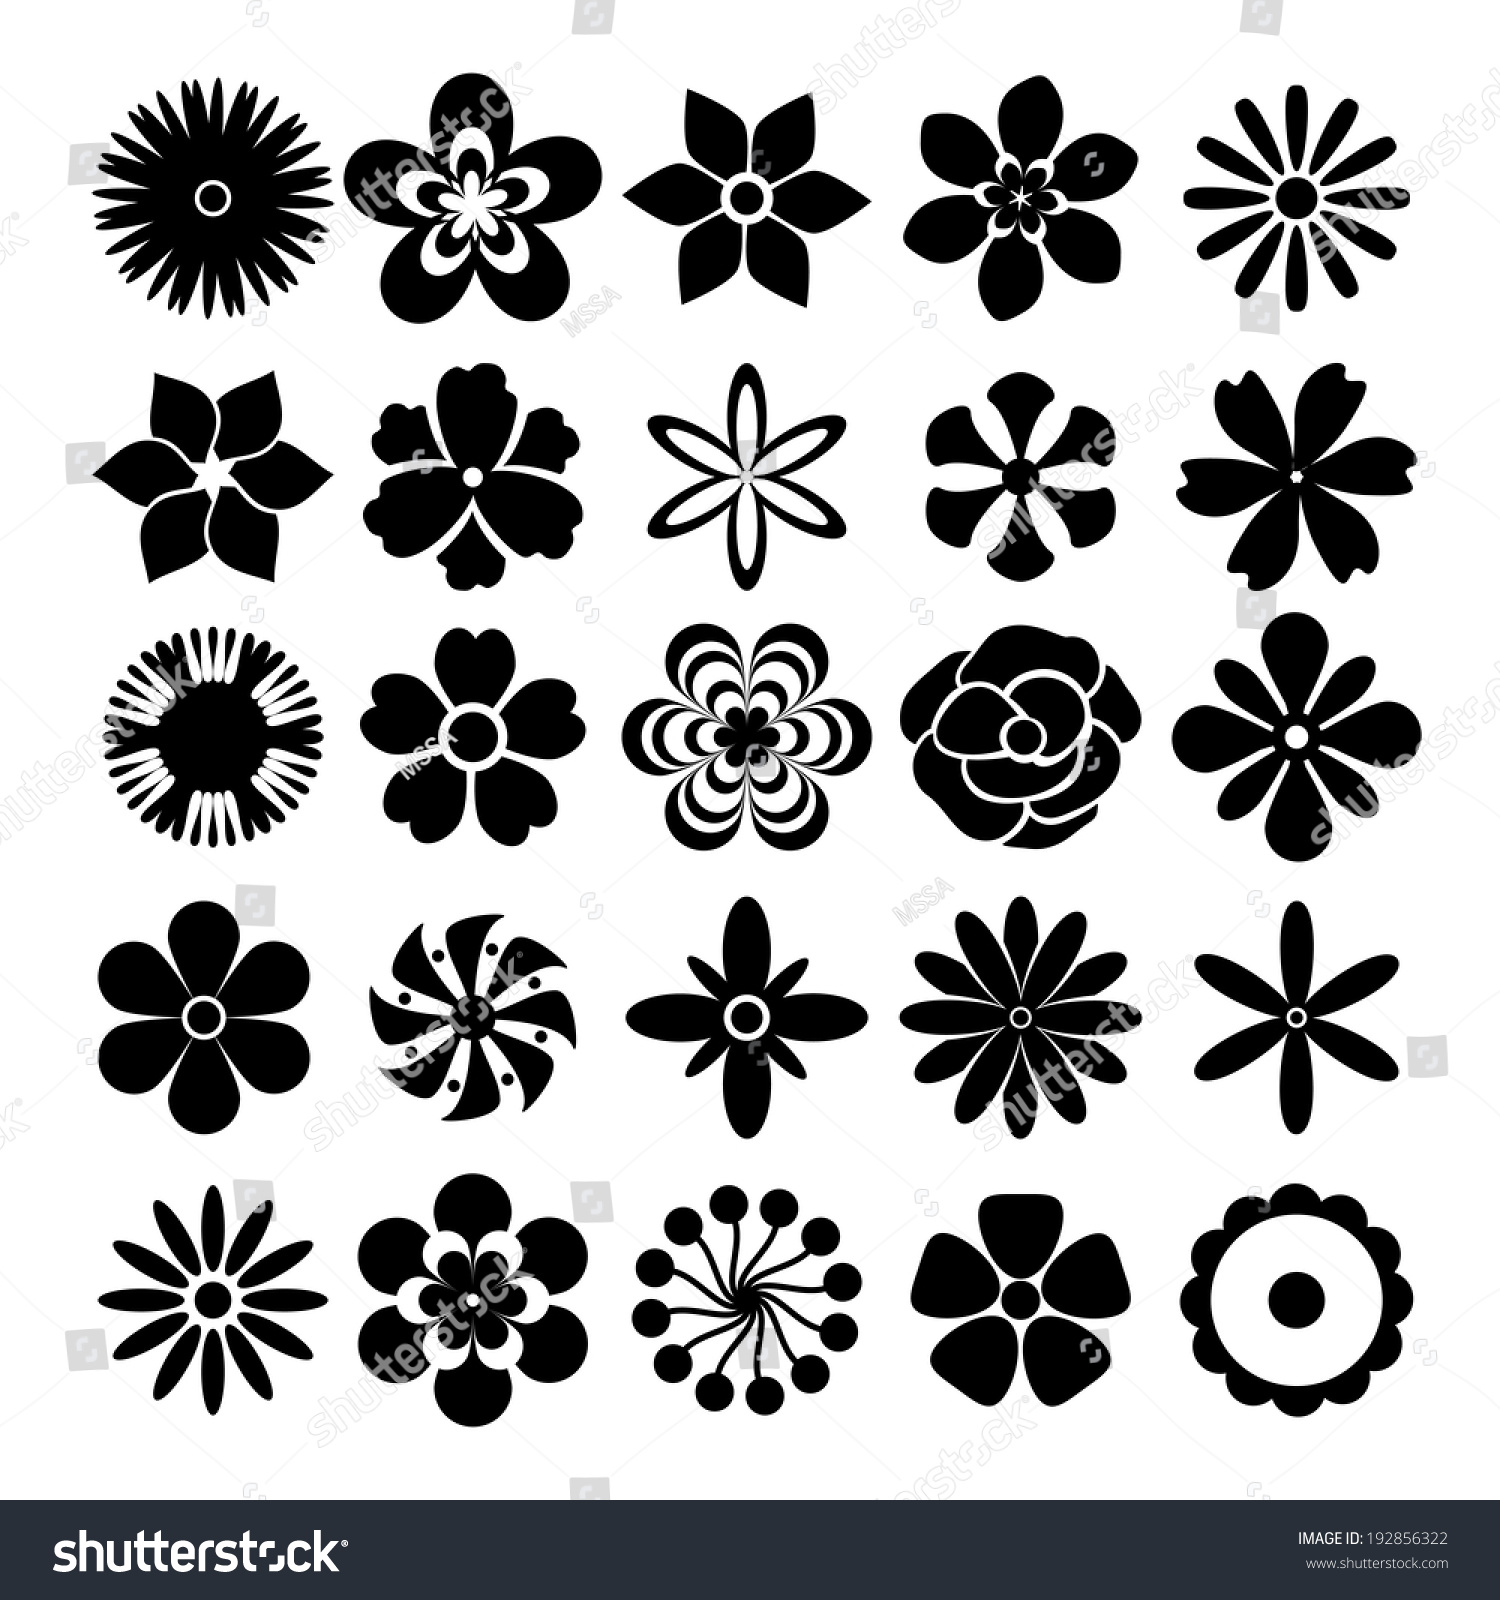 Black White Flowers Set Twentyfive Different Stock Illustration